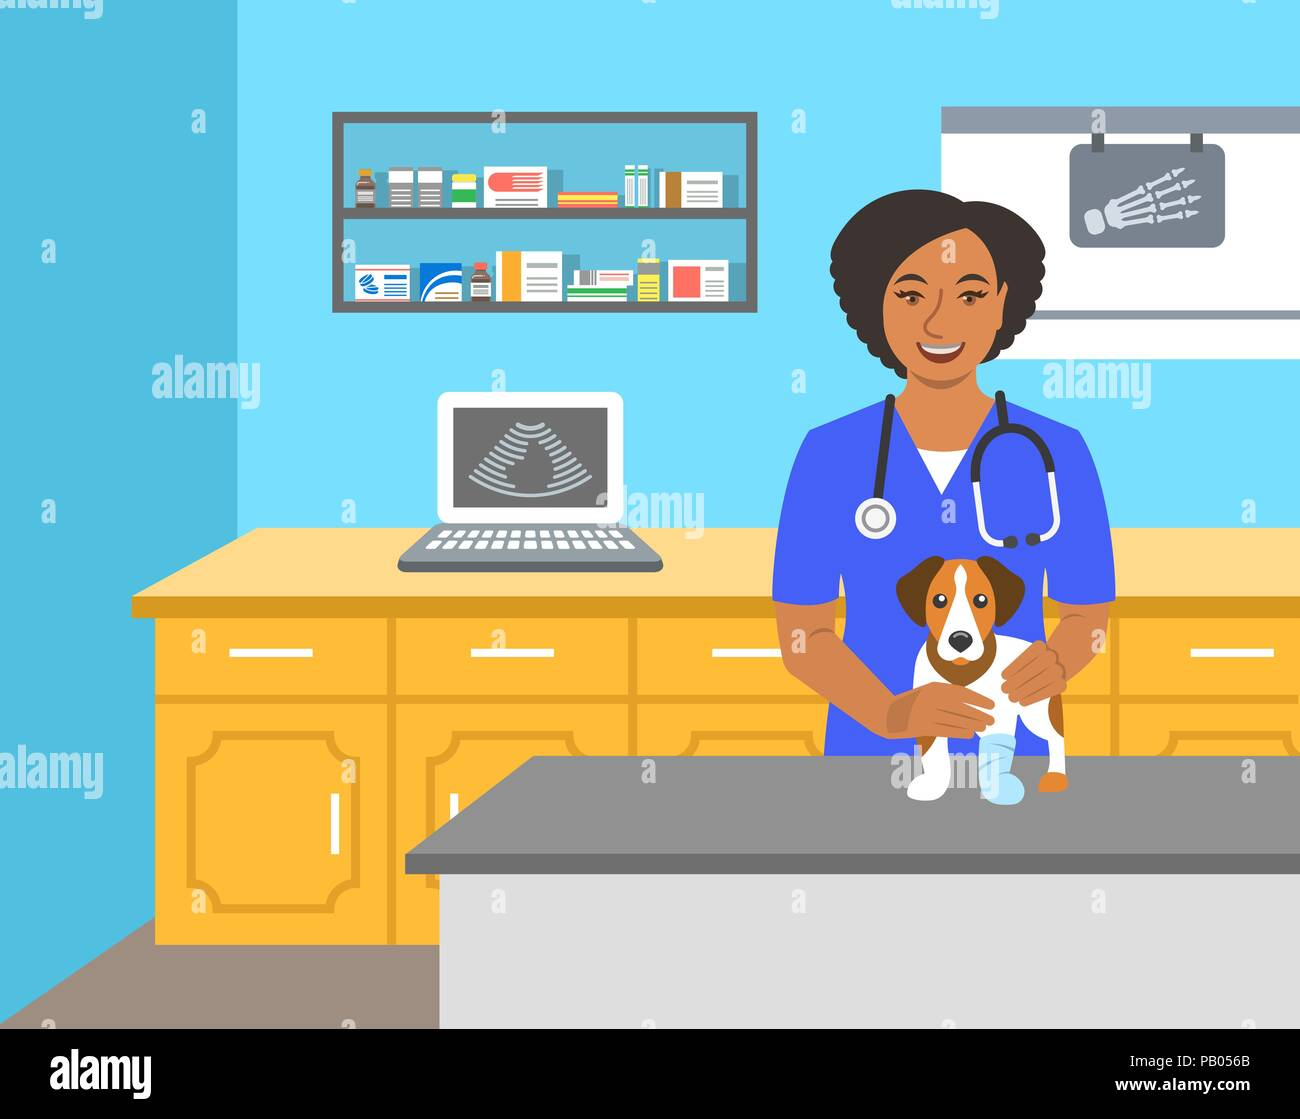 Veterinarian doctor holds dog on examination table in vet clinic. Vector cartoon illustration. Pets health care background. Domestic animals treatment - Stock Image